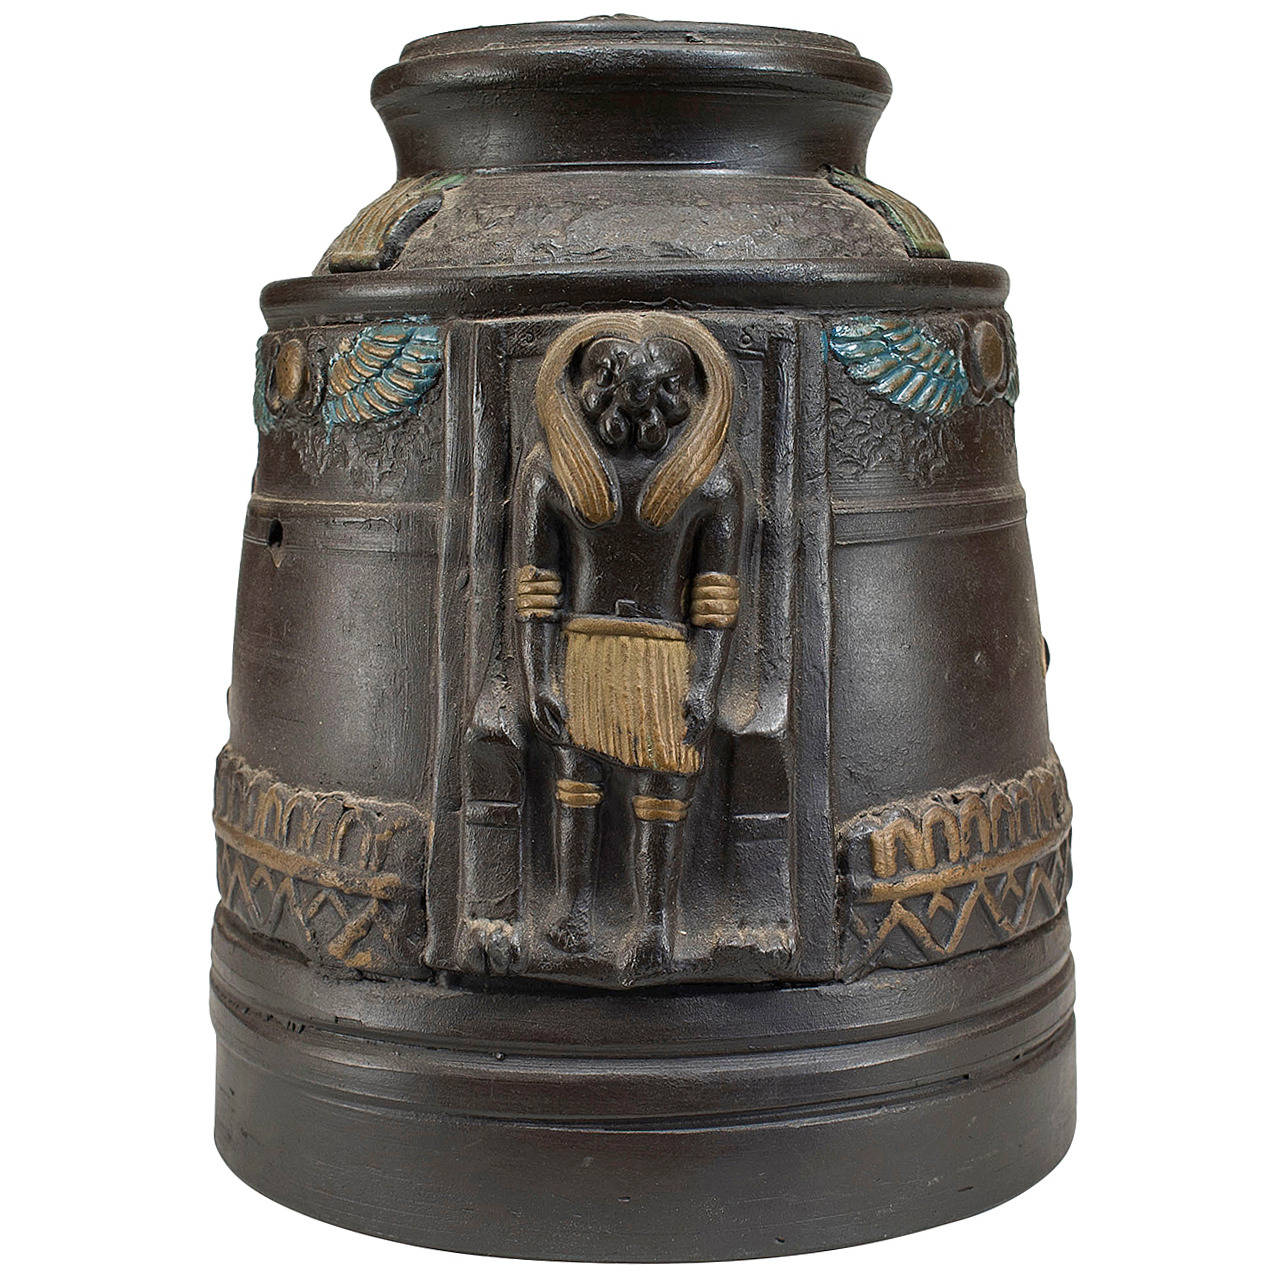 1920s Japanese Egyptian Revival Tobacco Jar